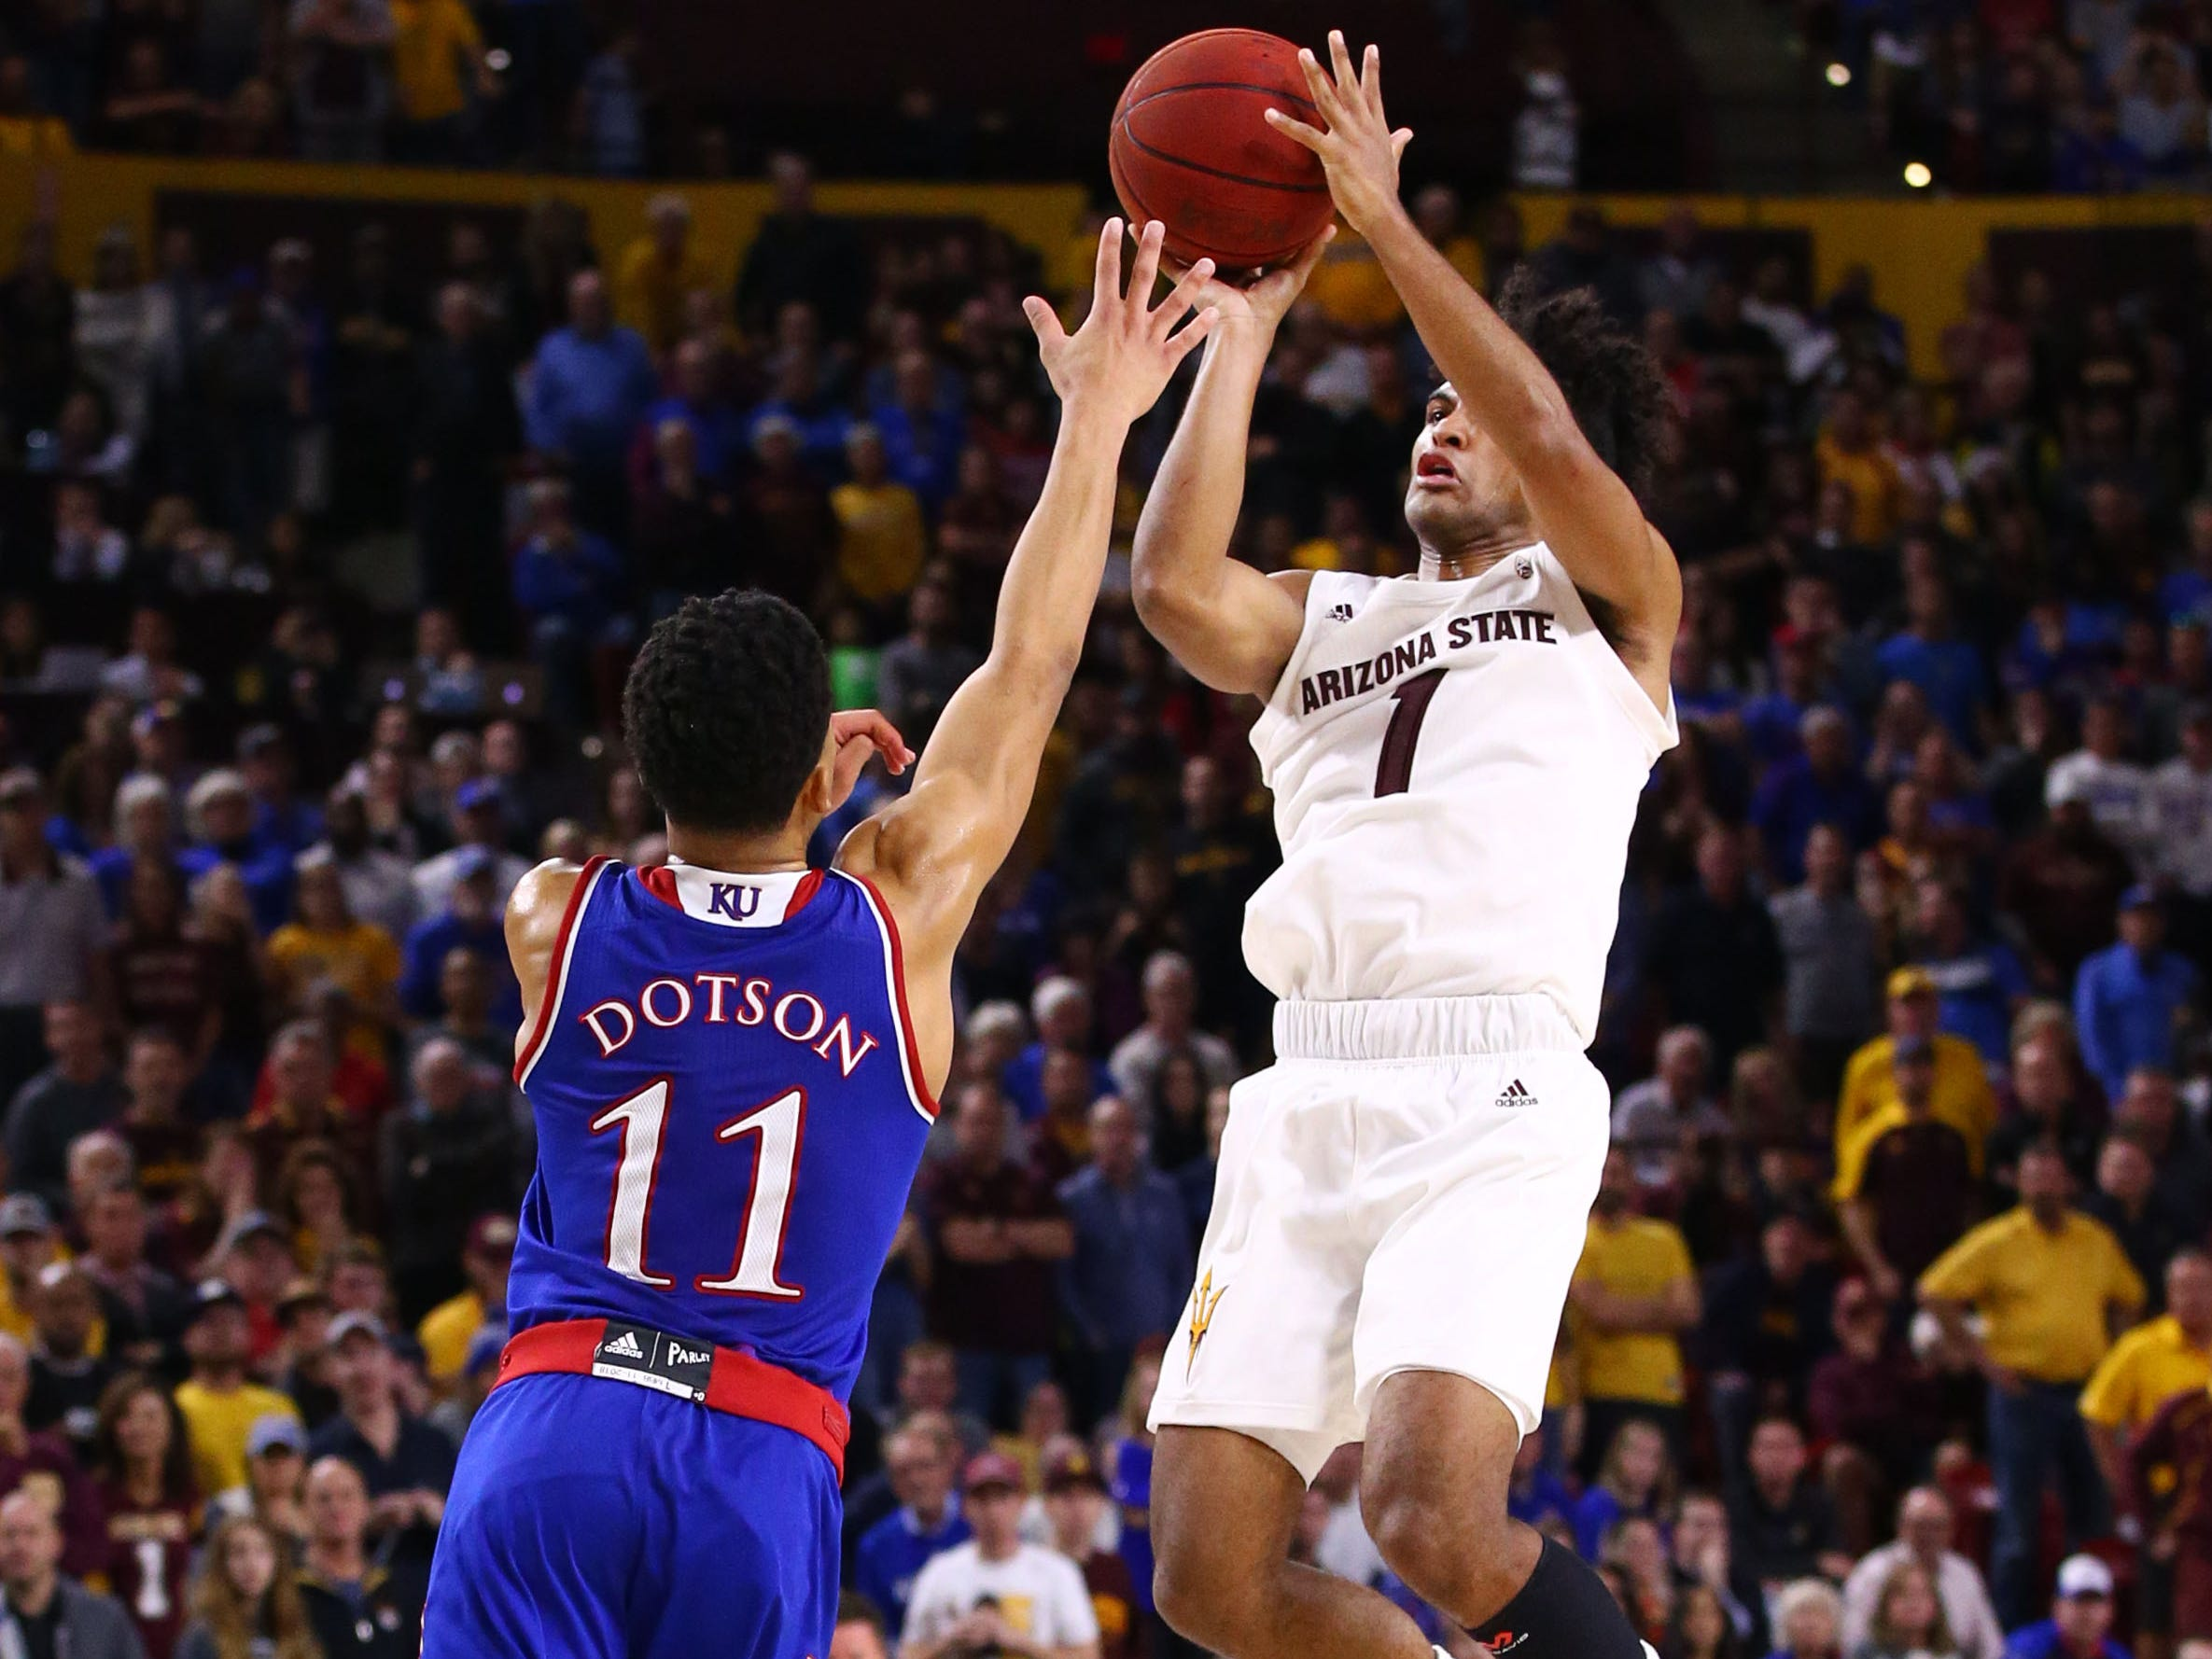 Arizona State guard Remy Martin makes the final basket of the game over Kansas guard Devon Dotson in the second